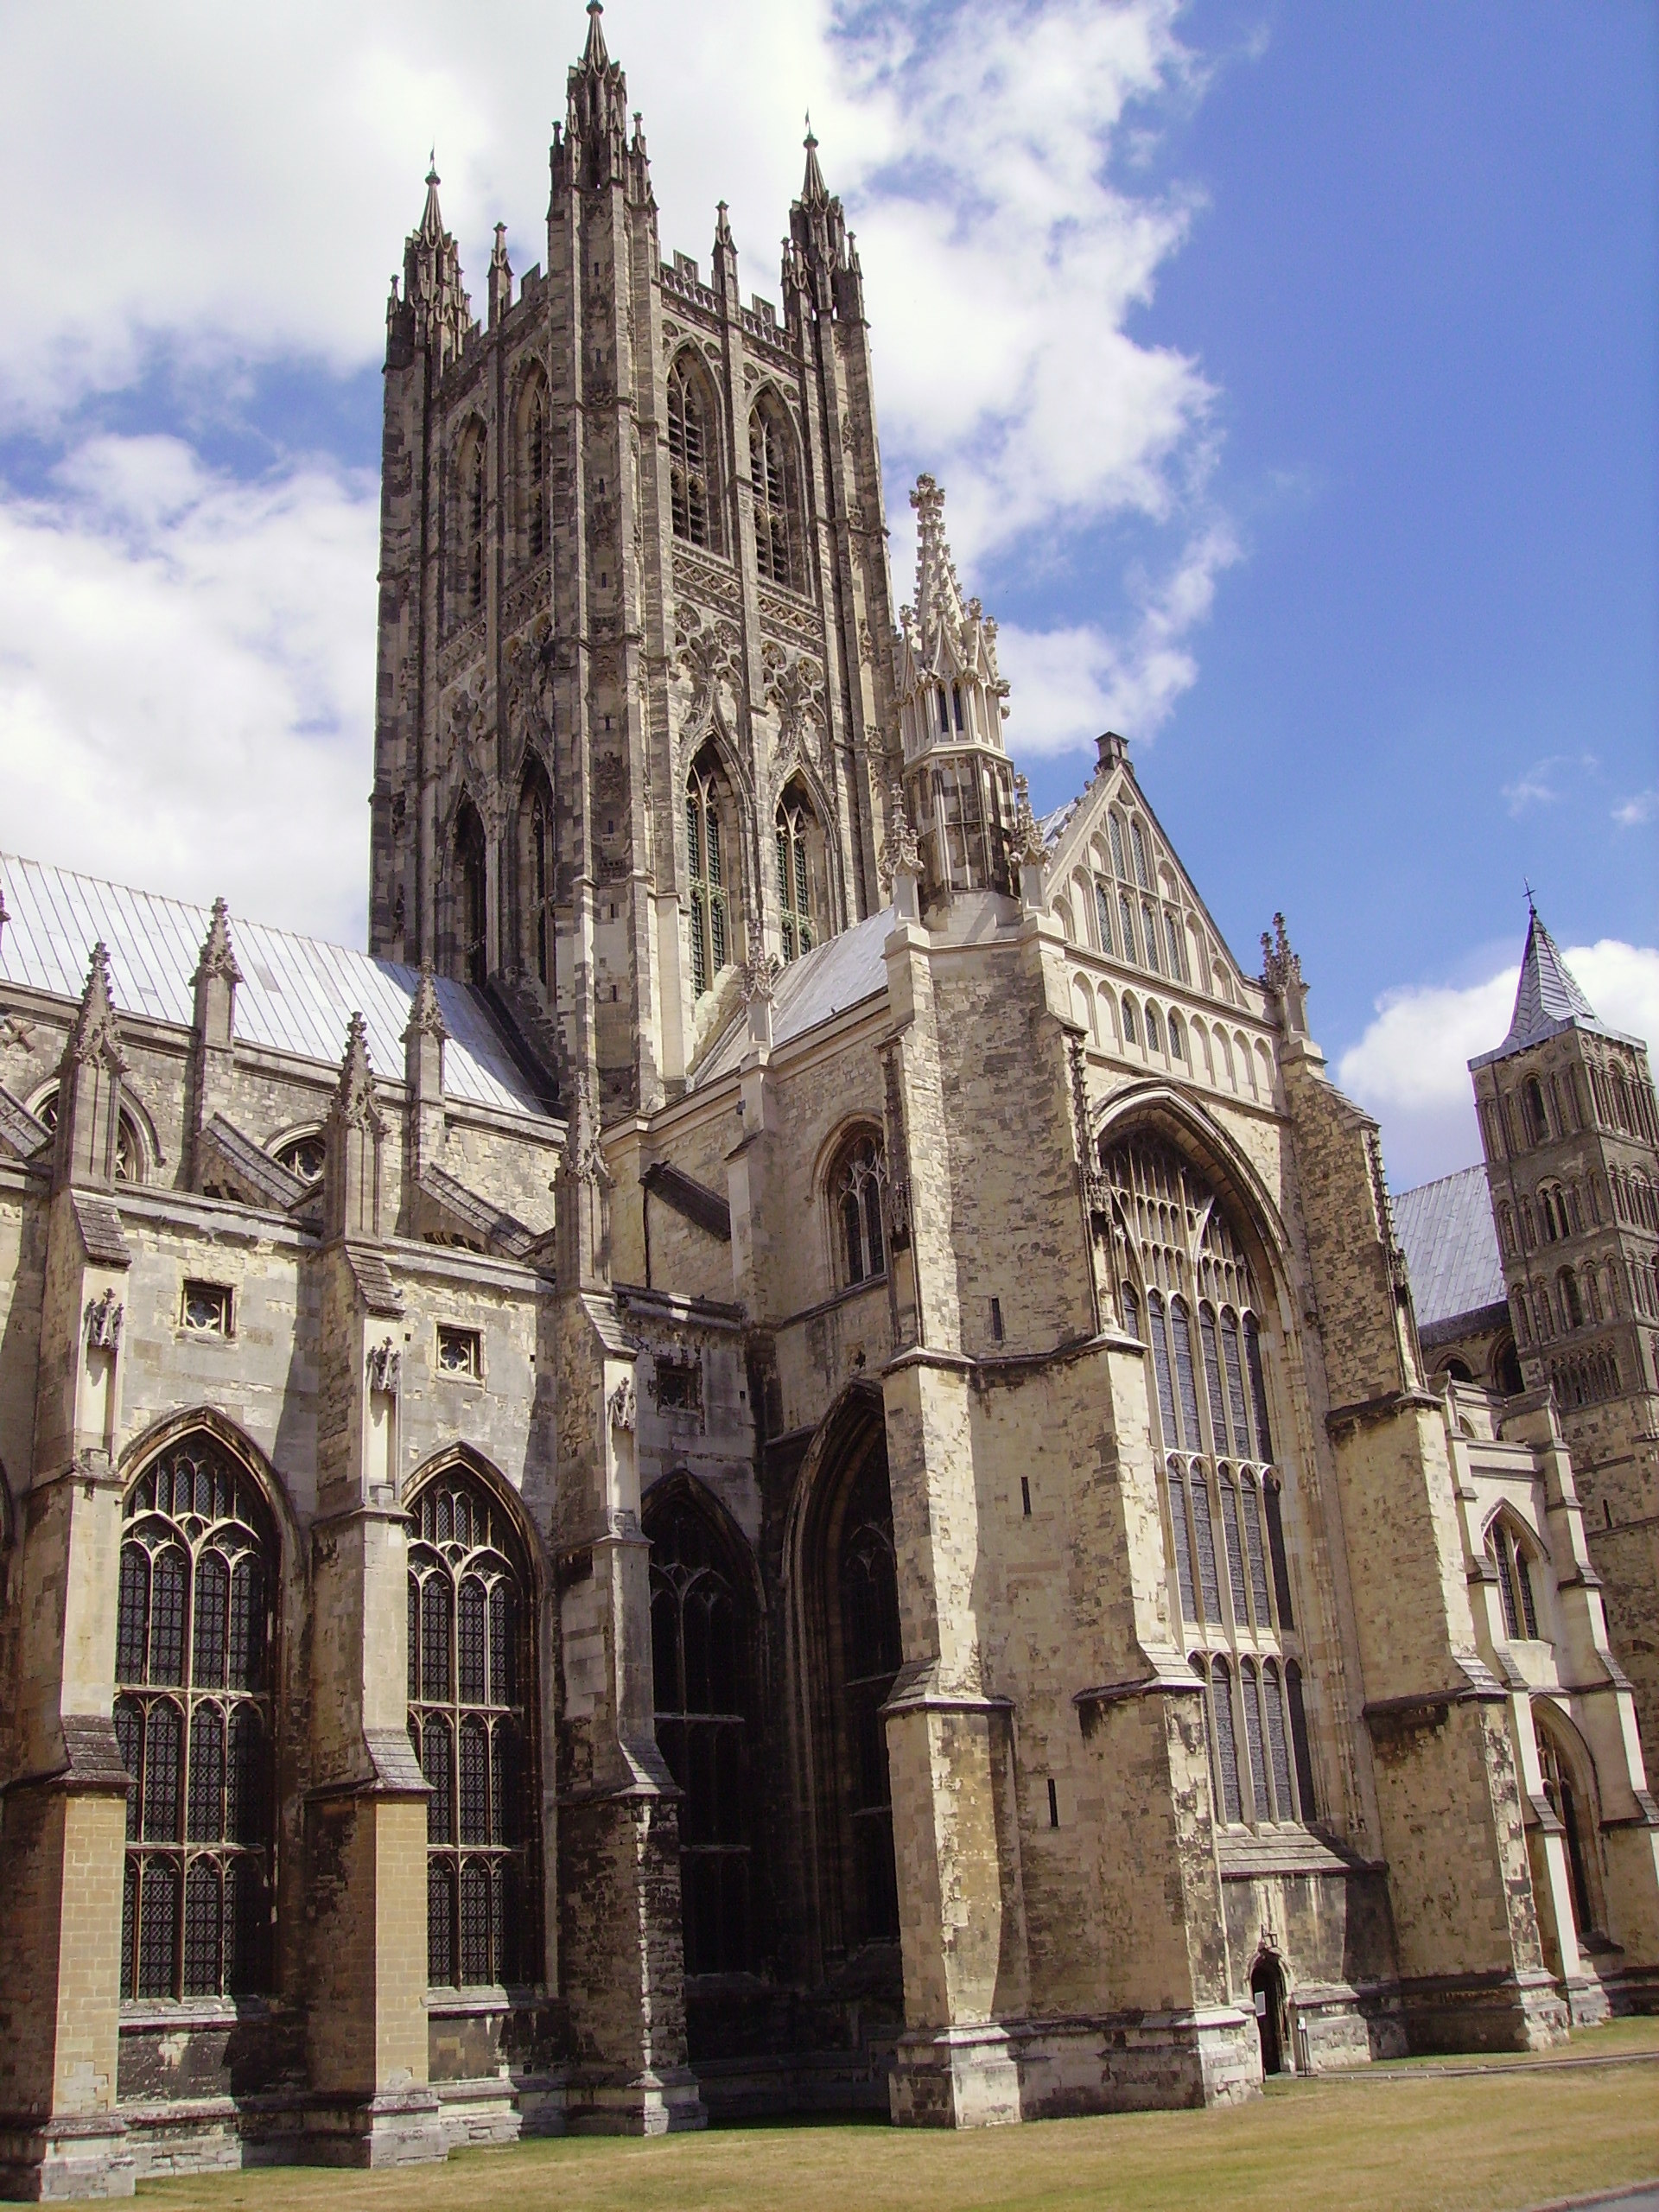 The tower at Canterbury is Canterbury Cathedral Gothic Architecture